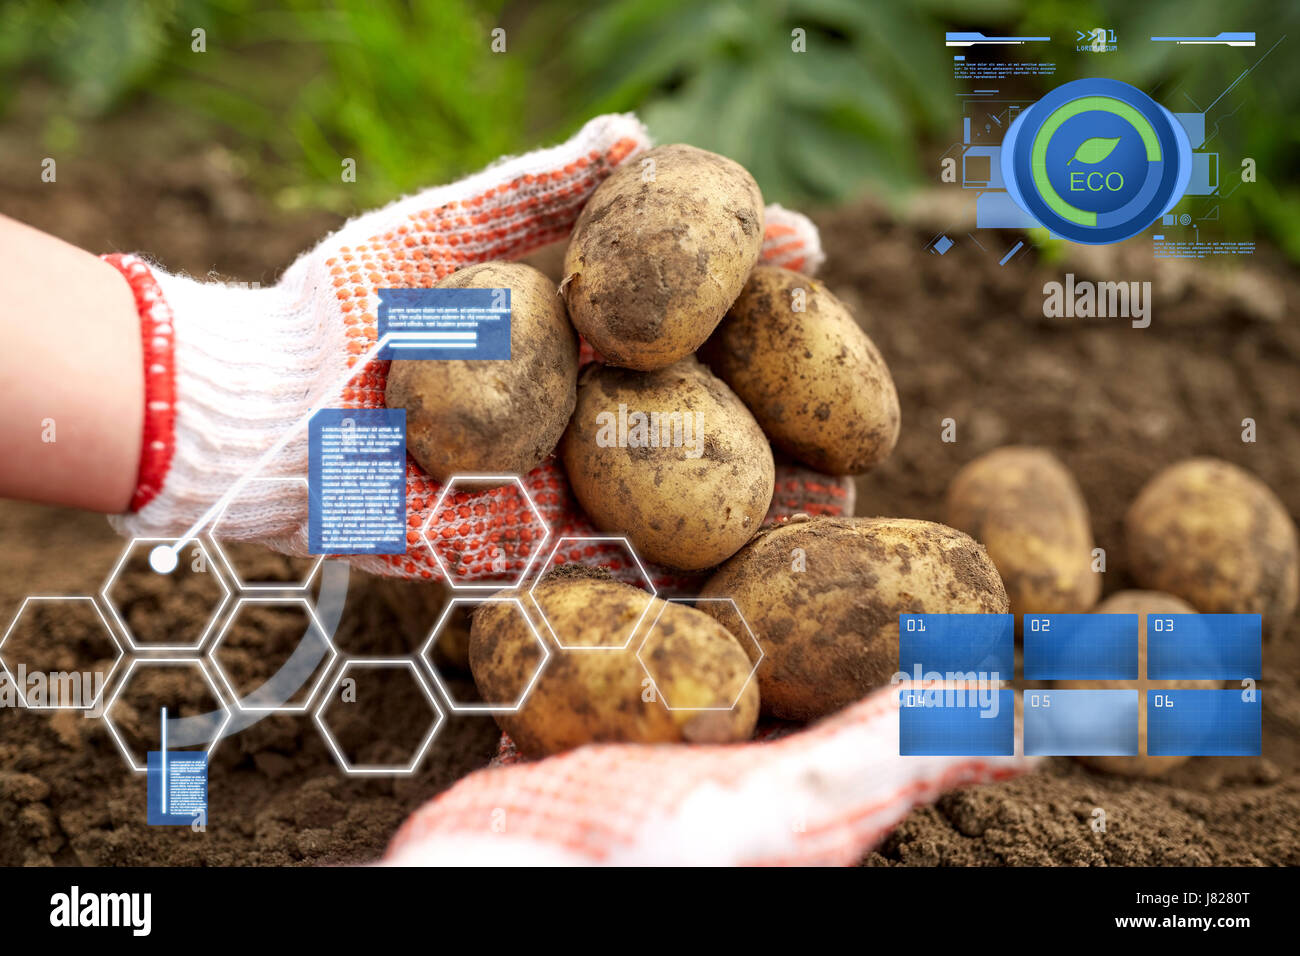 farmer with potatoes at farm garden Stock Photo: 142650392 - Alamy